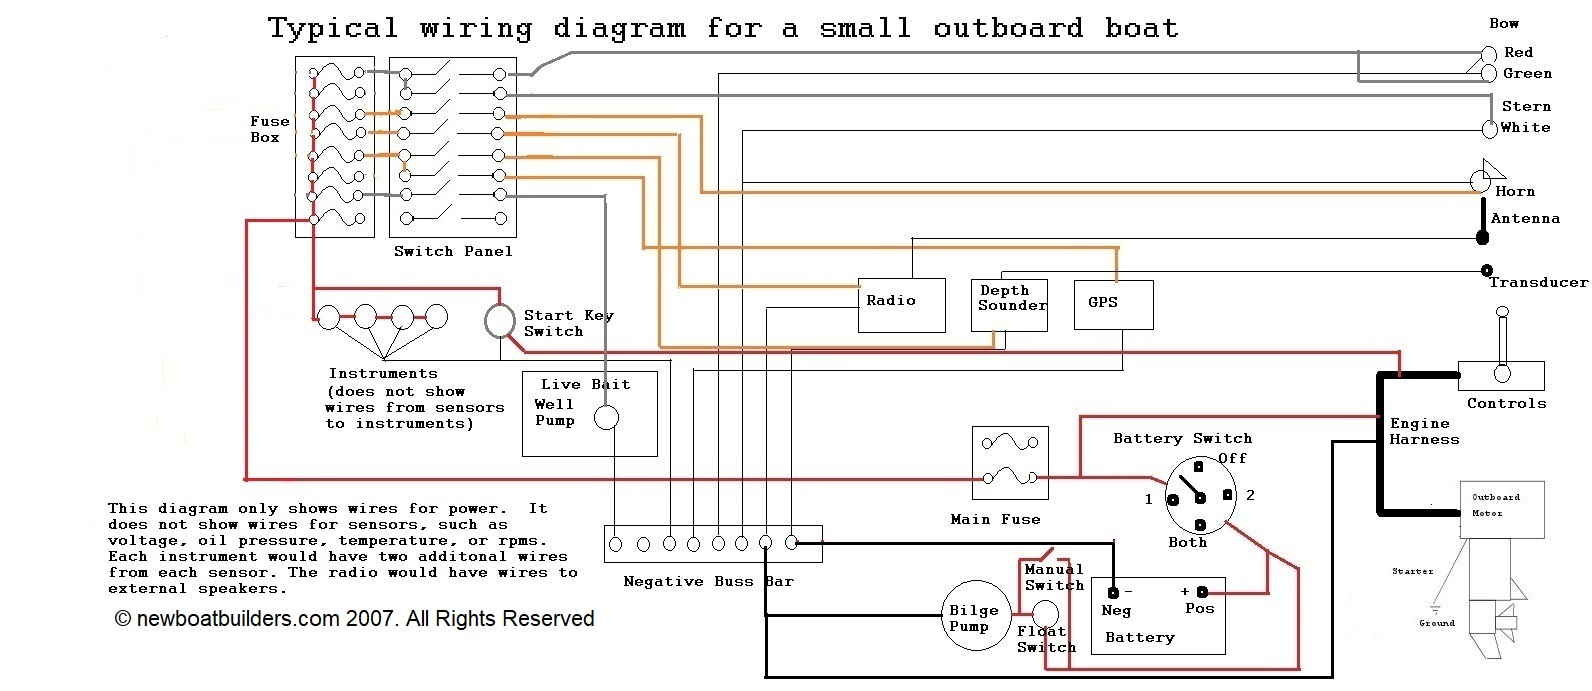 boat stereo installation wiring diagram online wiring diagram Boat Lighting Wiring Diagram boat building standards basic electricity wiring your boatwiring diagram, alt circuit